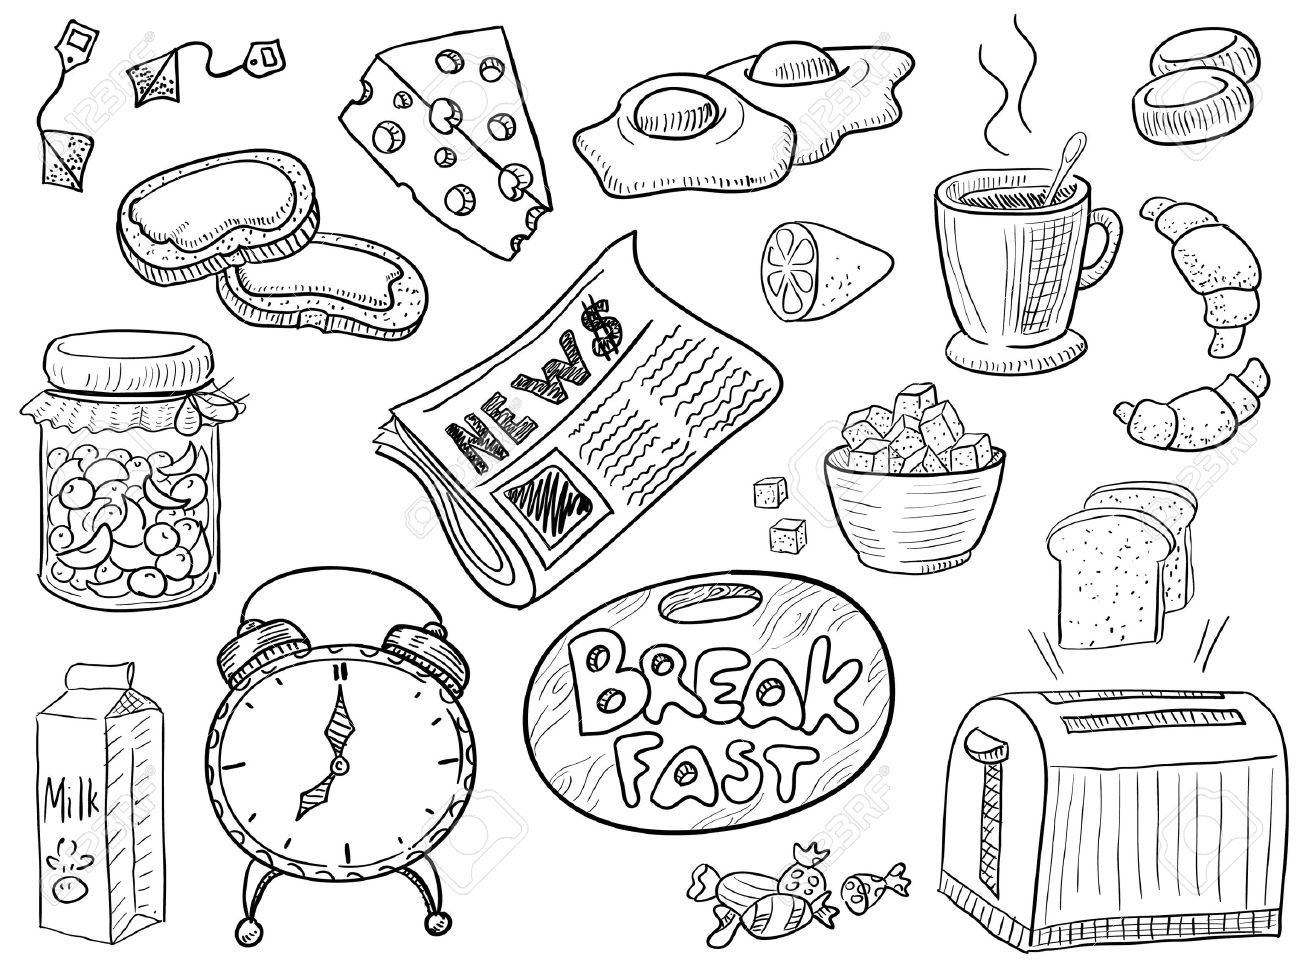 food themed coloring pages food coloring pages food coloring pages coloring pages food coloring pages themed